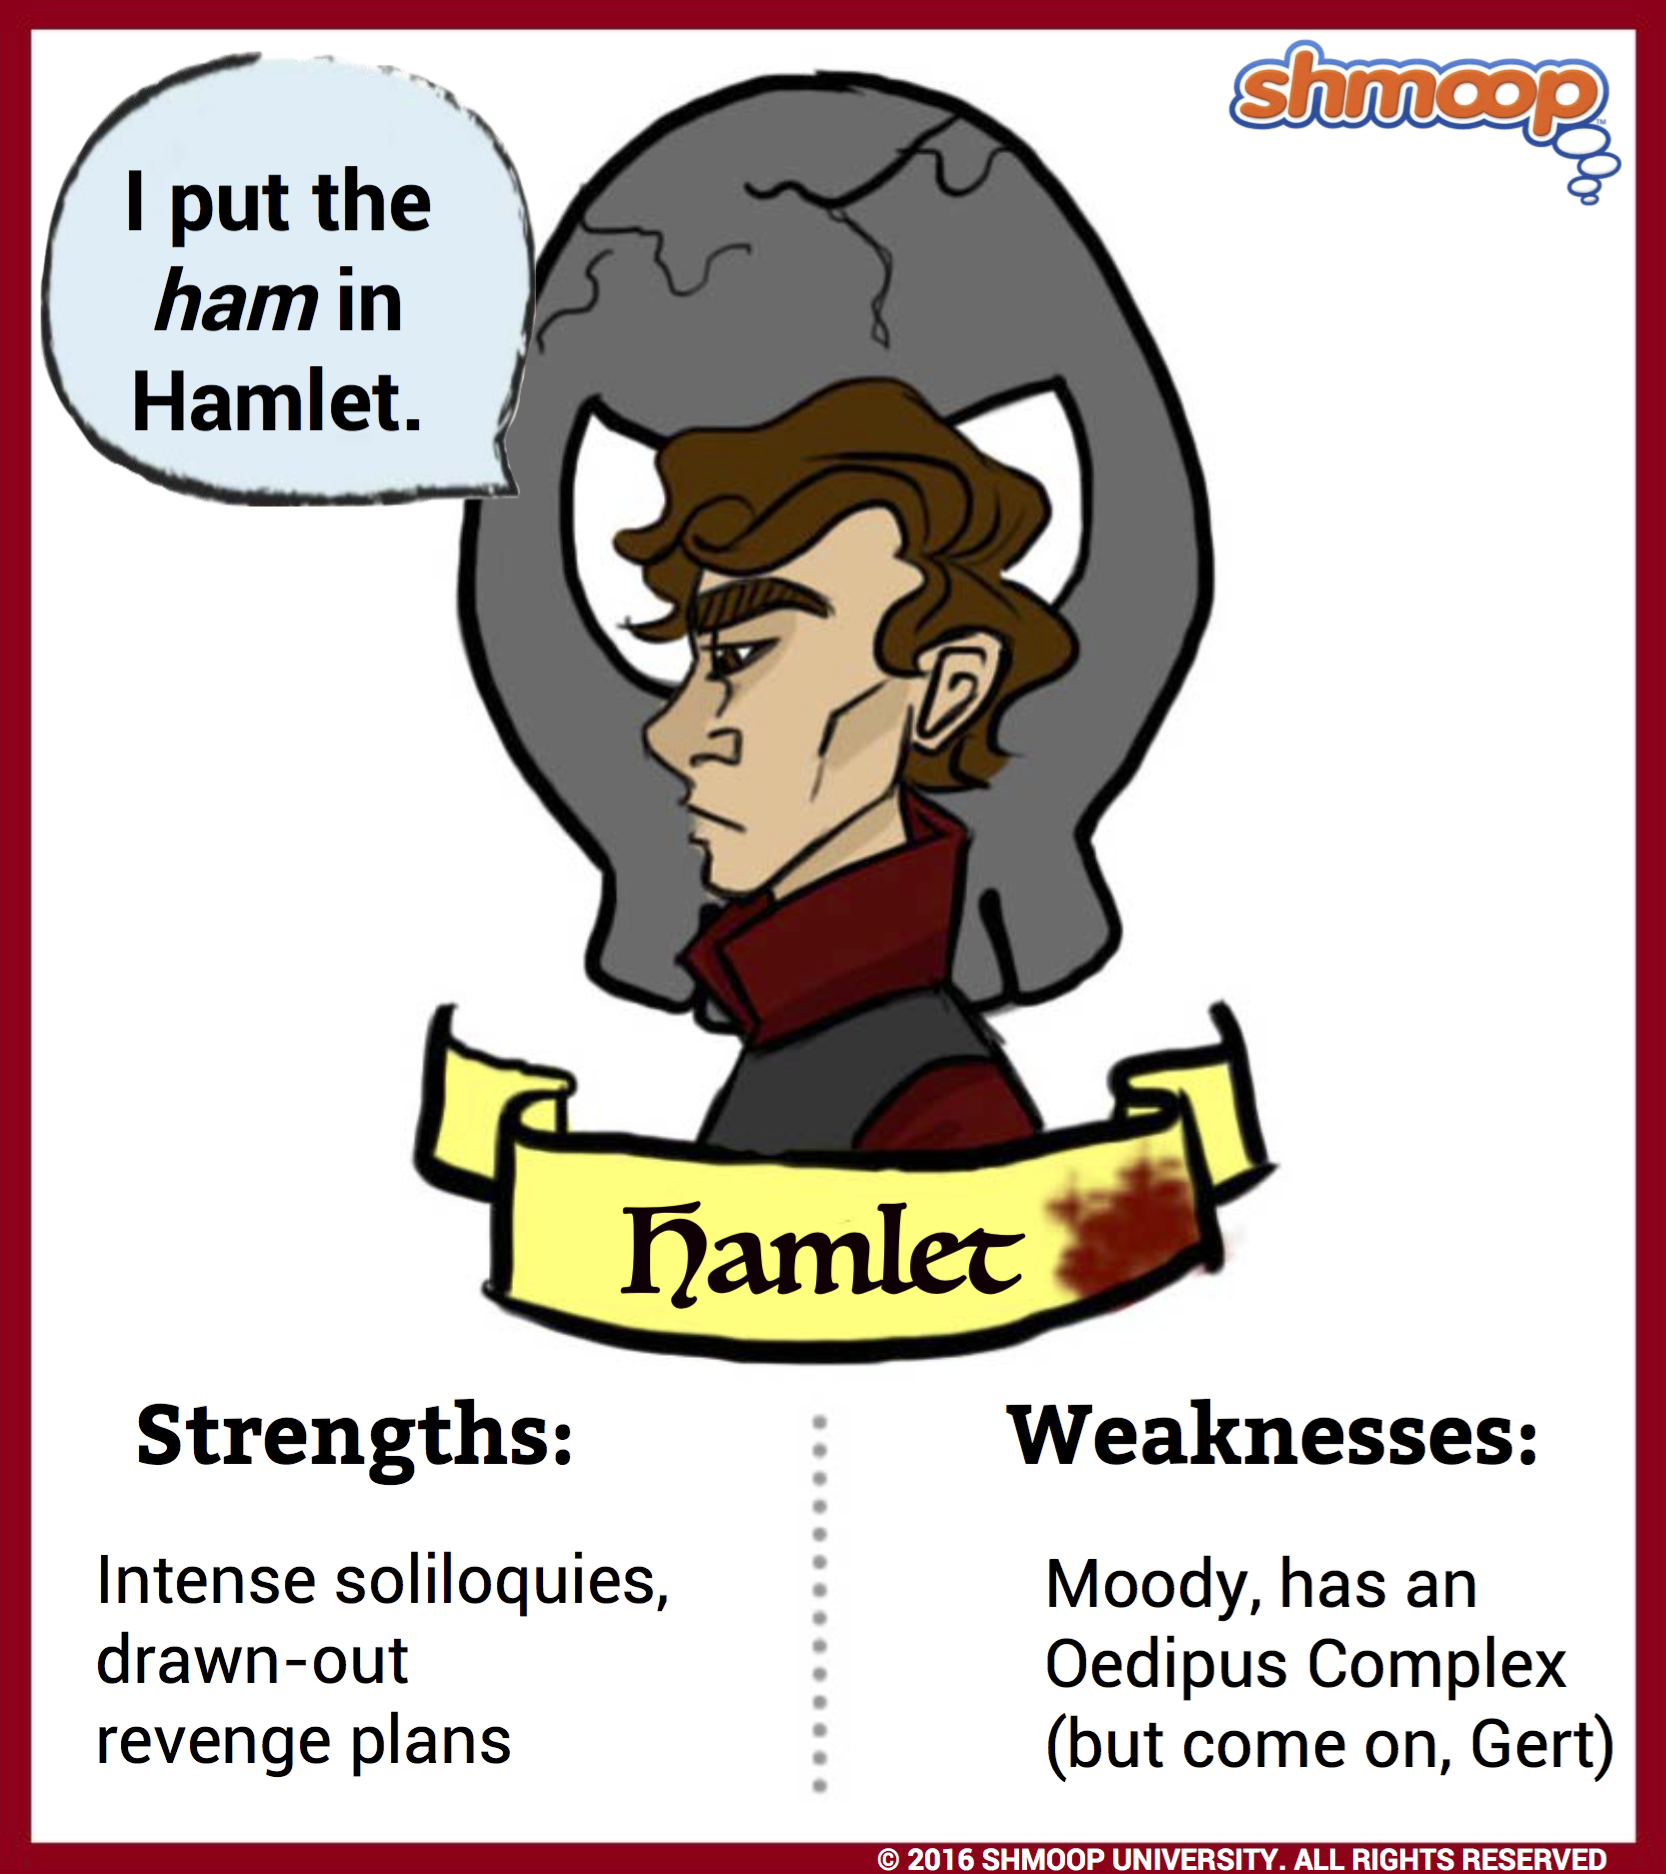 an essay on the hamartia of hamlet Category: the tragedy of hamlet essays title: free hamlet essays: no tragic flaw in hamlet my account  to which he is led by his hamartia.